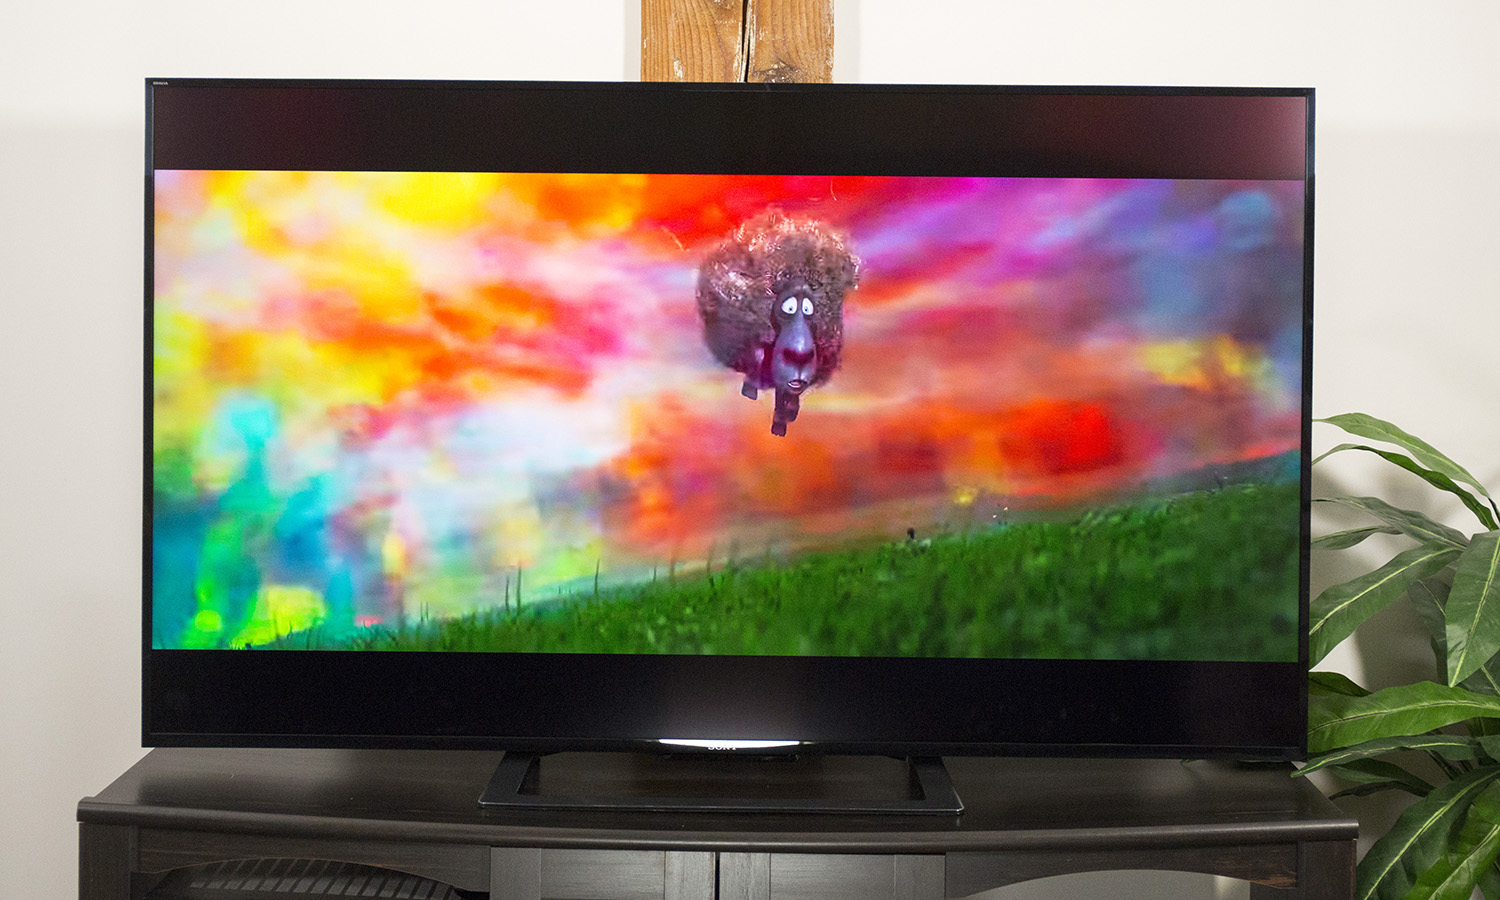 Sony X690E 70-Inch TV - Full Review and Benchmarks | Tom's Guide